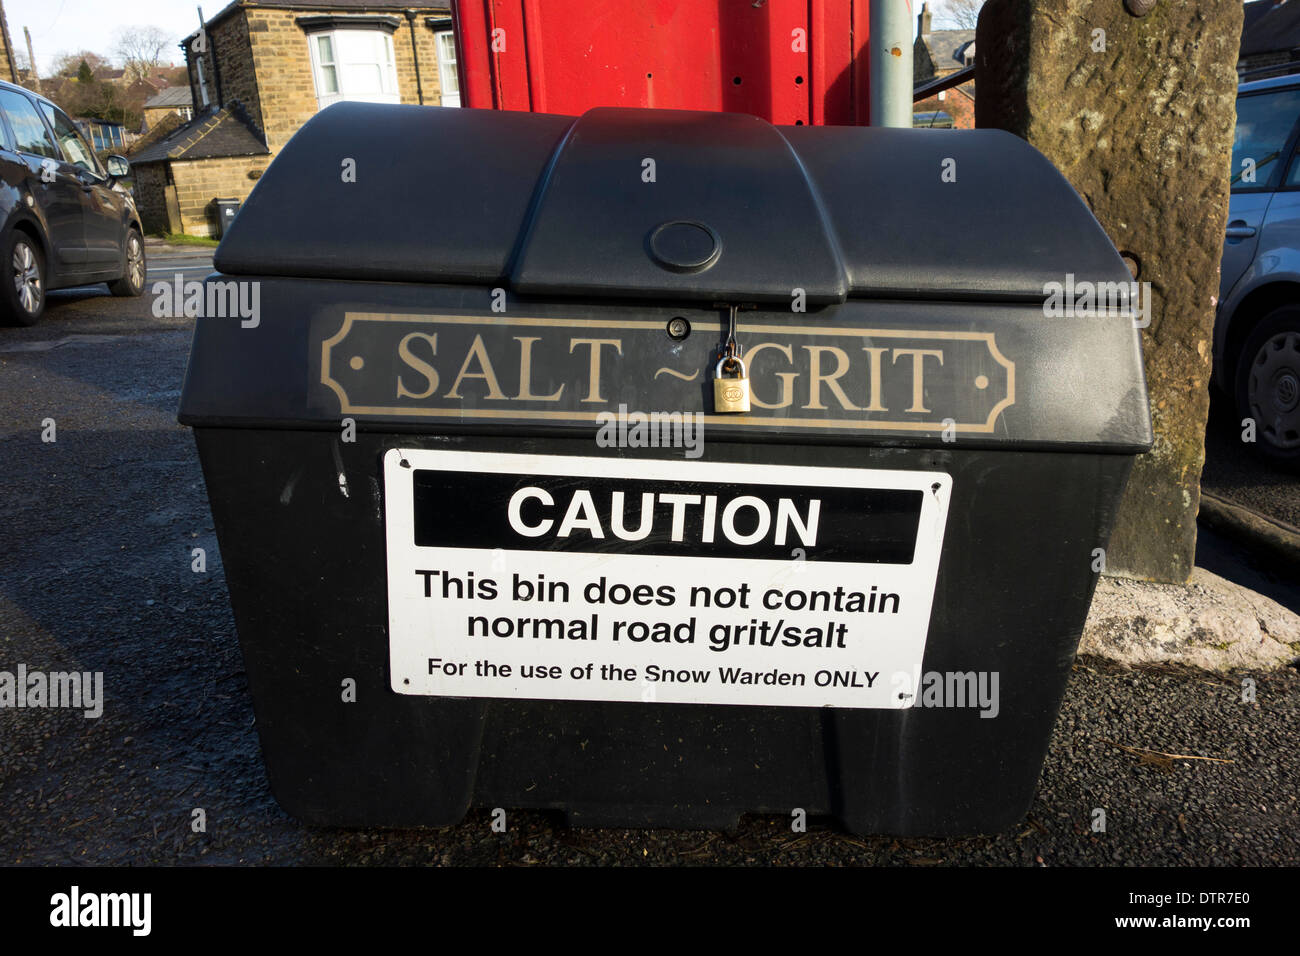 A grit bin in a village in the U.K. - Stock Image